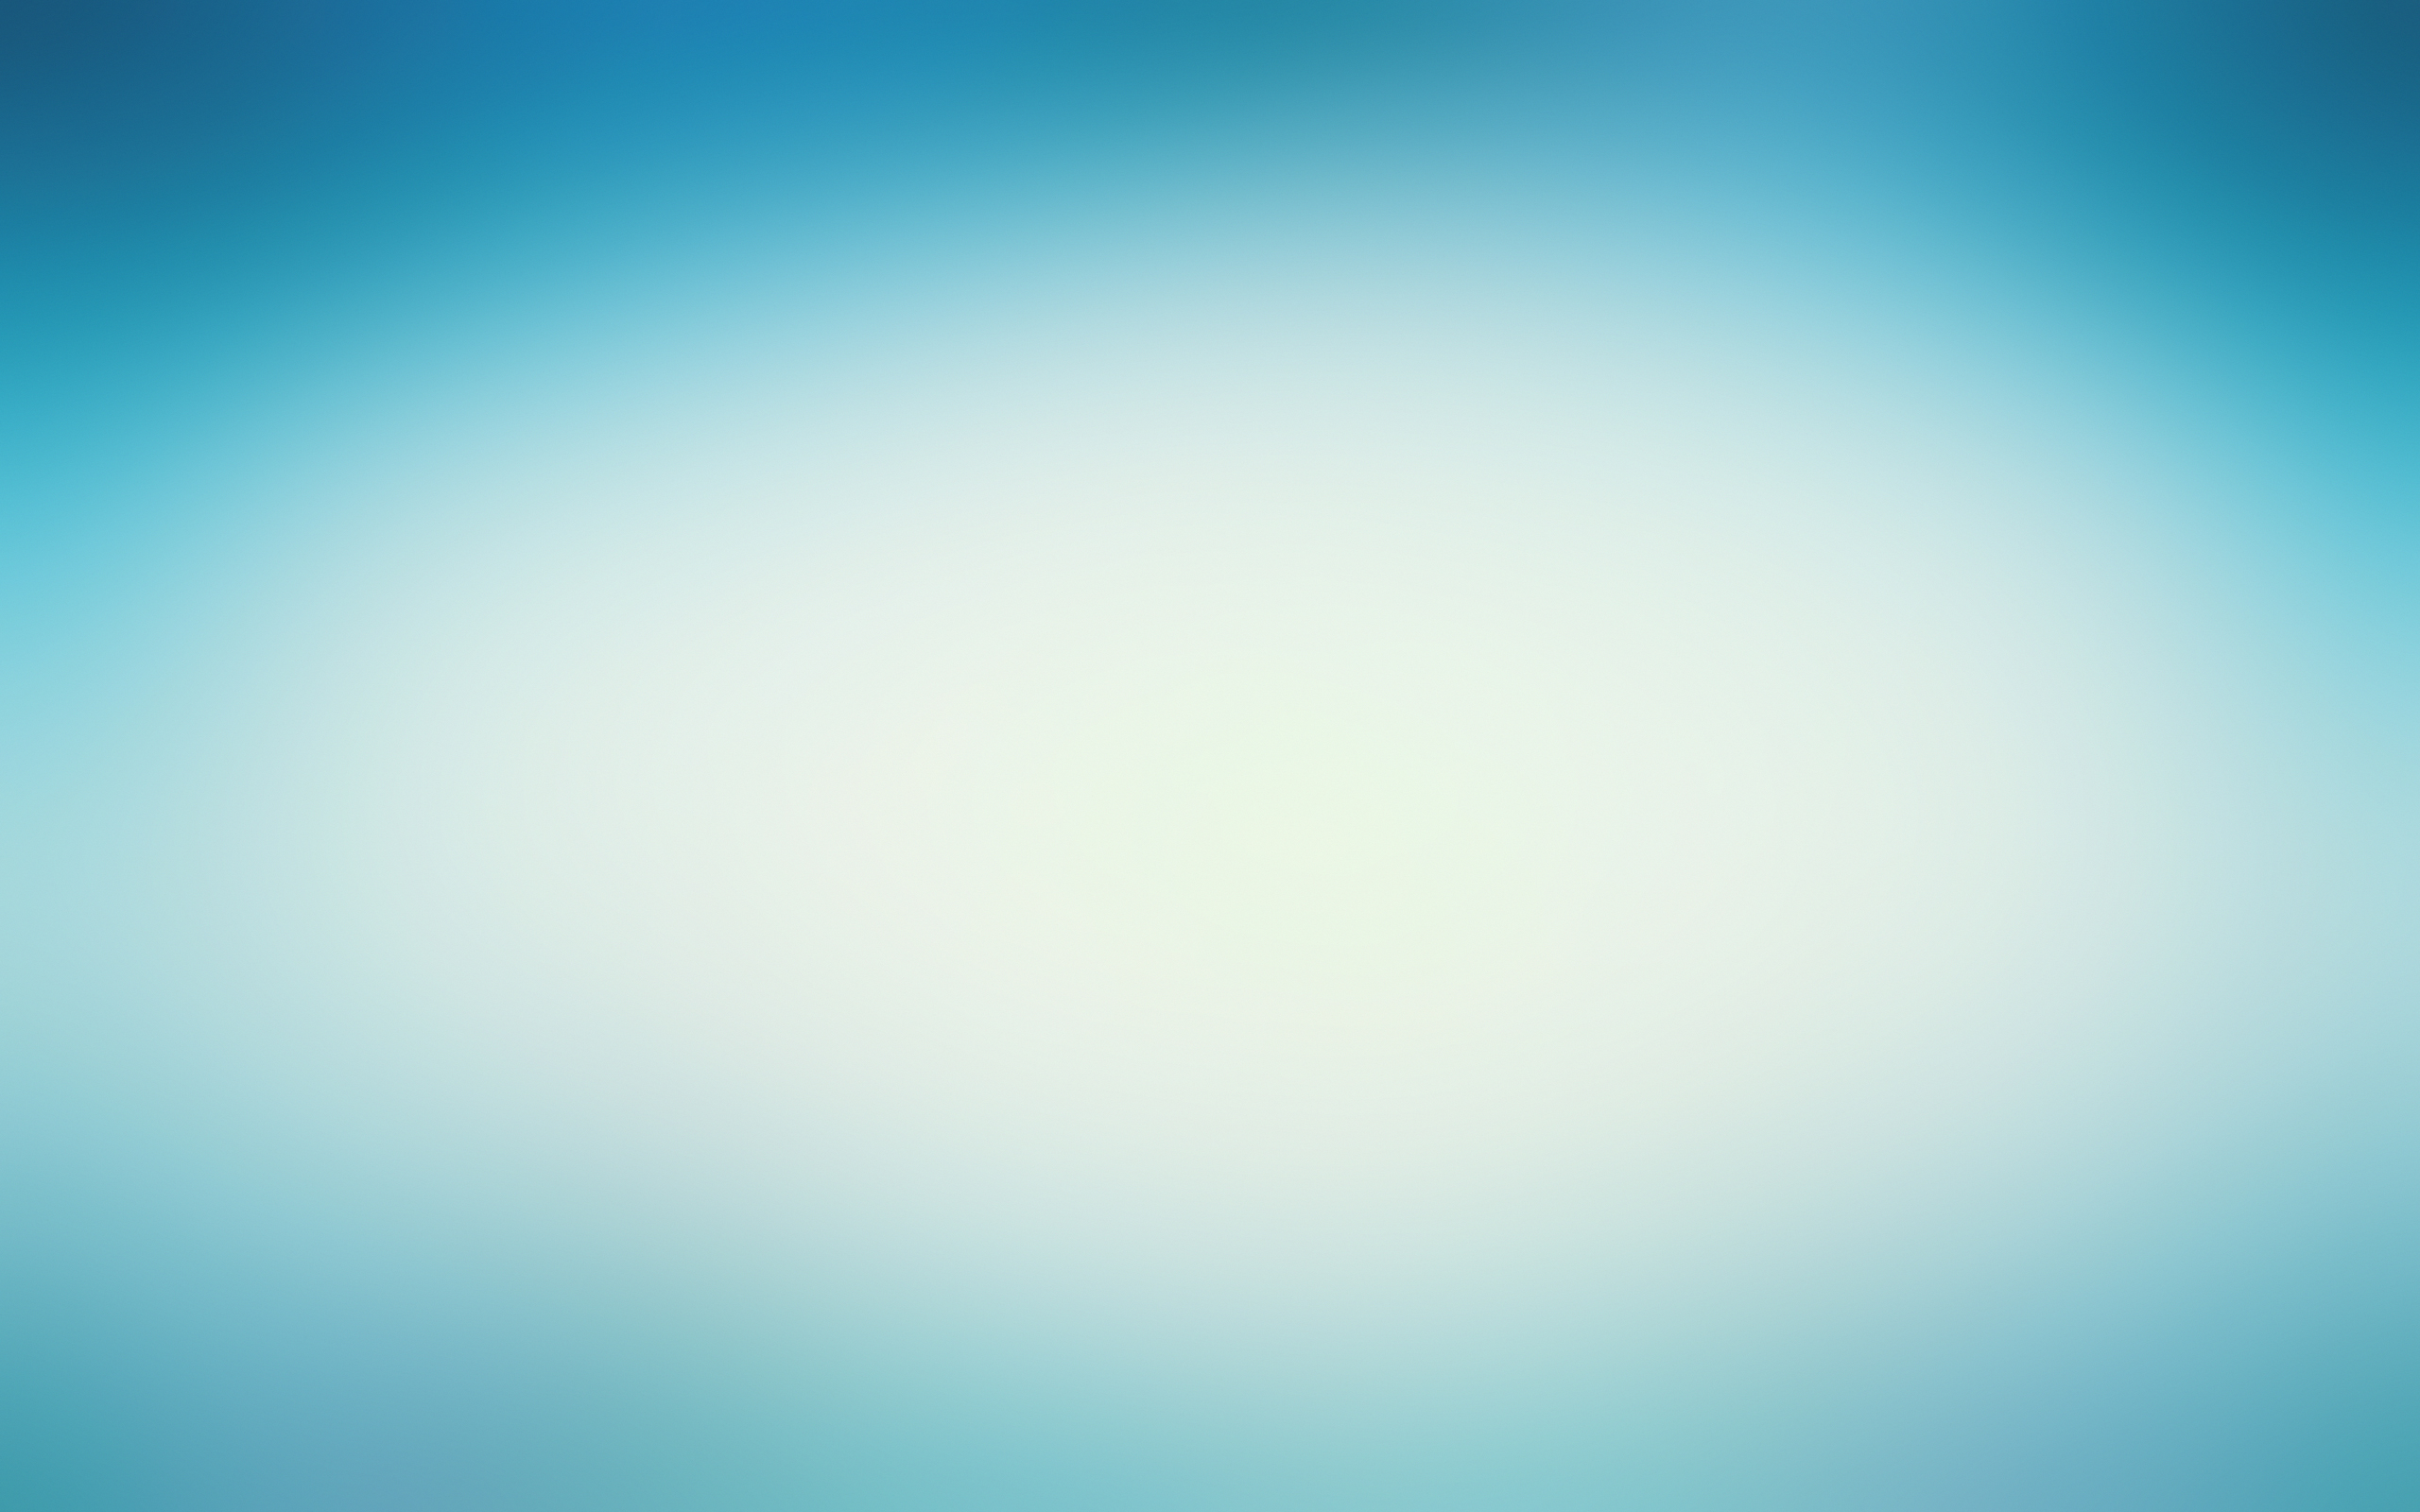 Backgrounds for your computer or presentation planwallpapercom 2560x1600